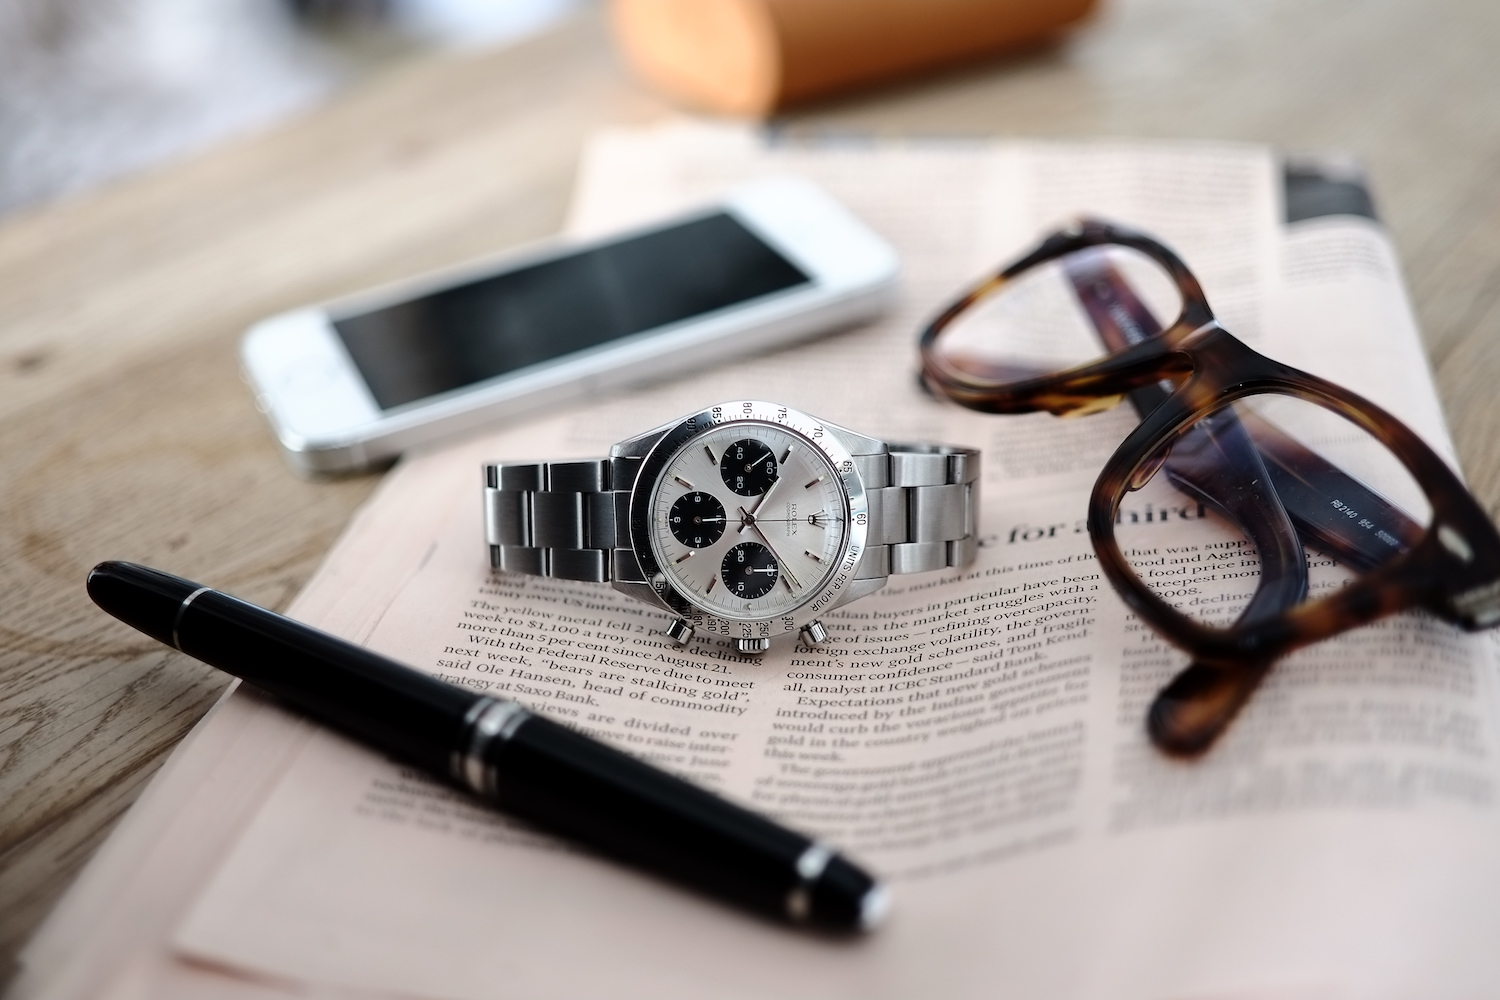 Rolex Daytona 6239 vintage early edition - Collectors Series - Kristian Haagen - 5